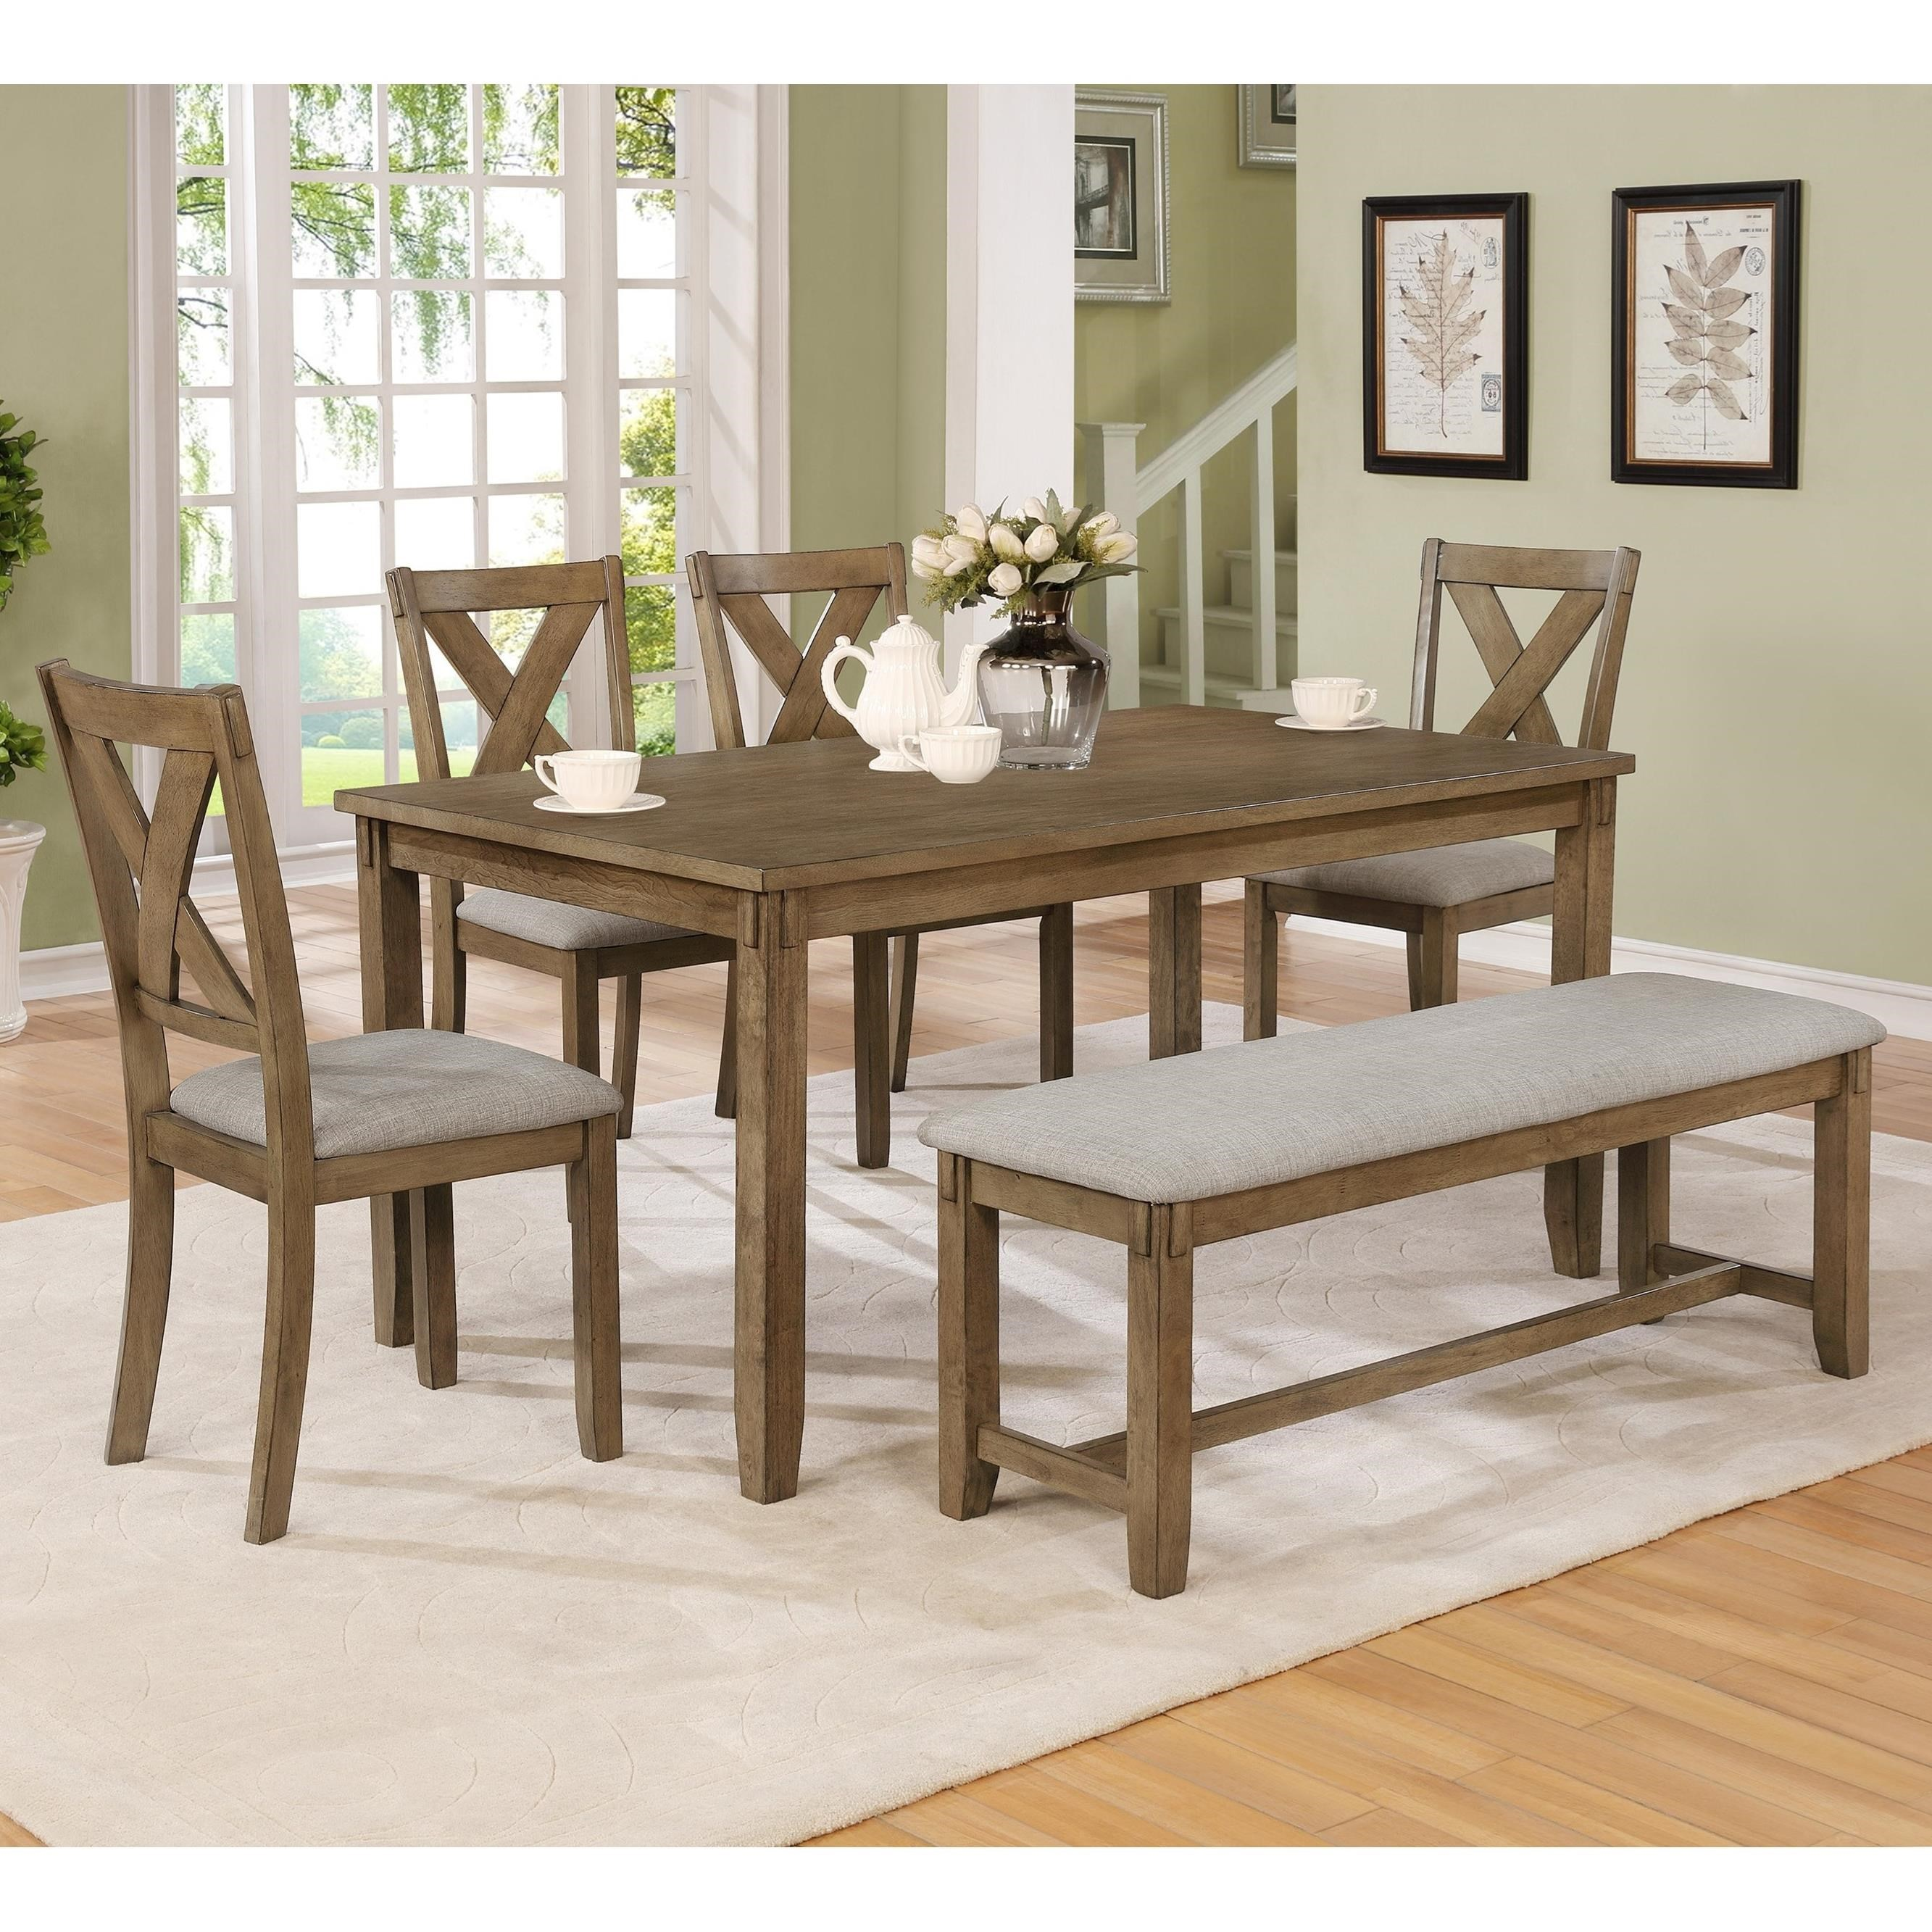 Picture of: Crown Mark Clara 6 Piece Table Set With Bench And Chairs Royal Furniture Table Chair Set With Bench